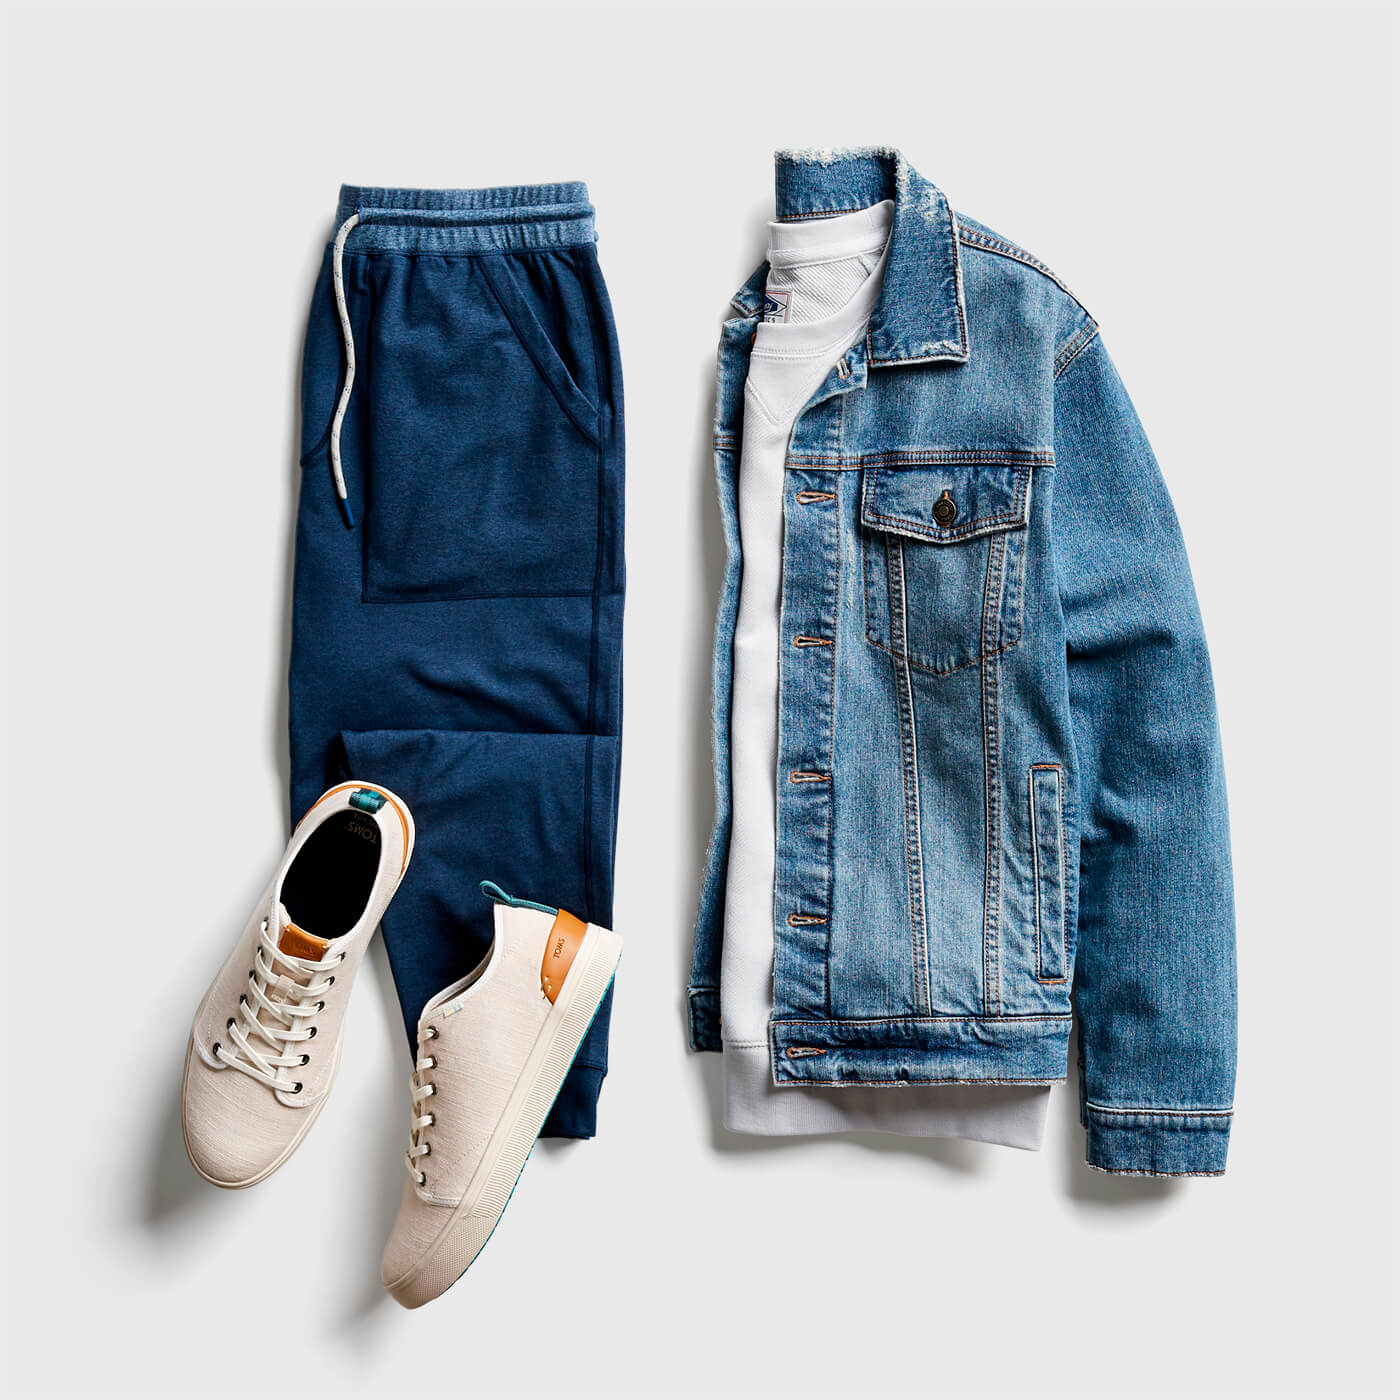 What do I wear with a jean jacket? | Stitch Fix Men